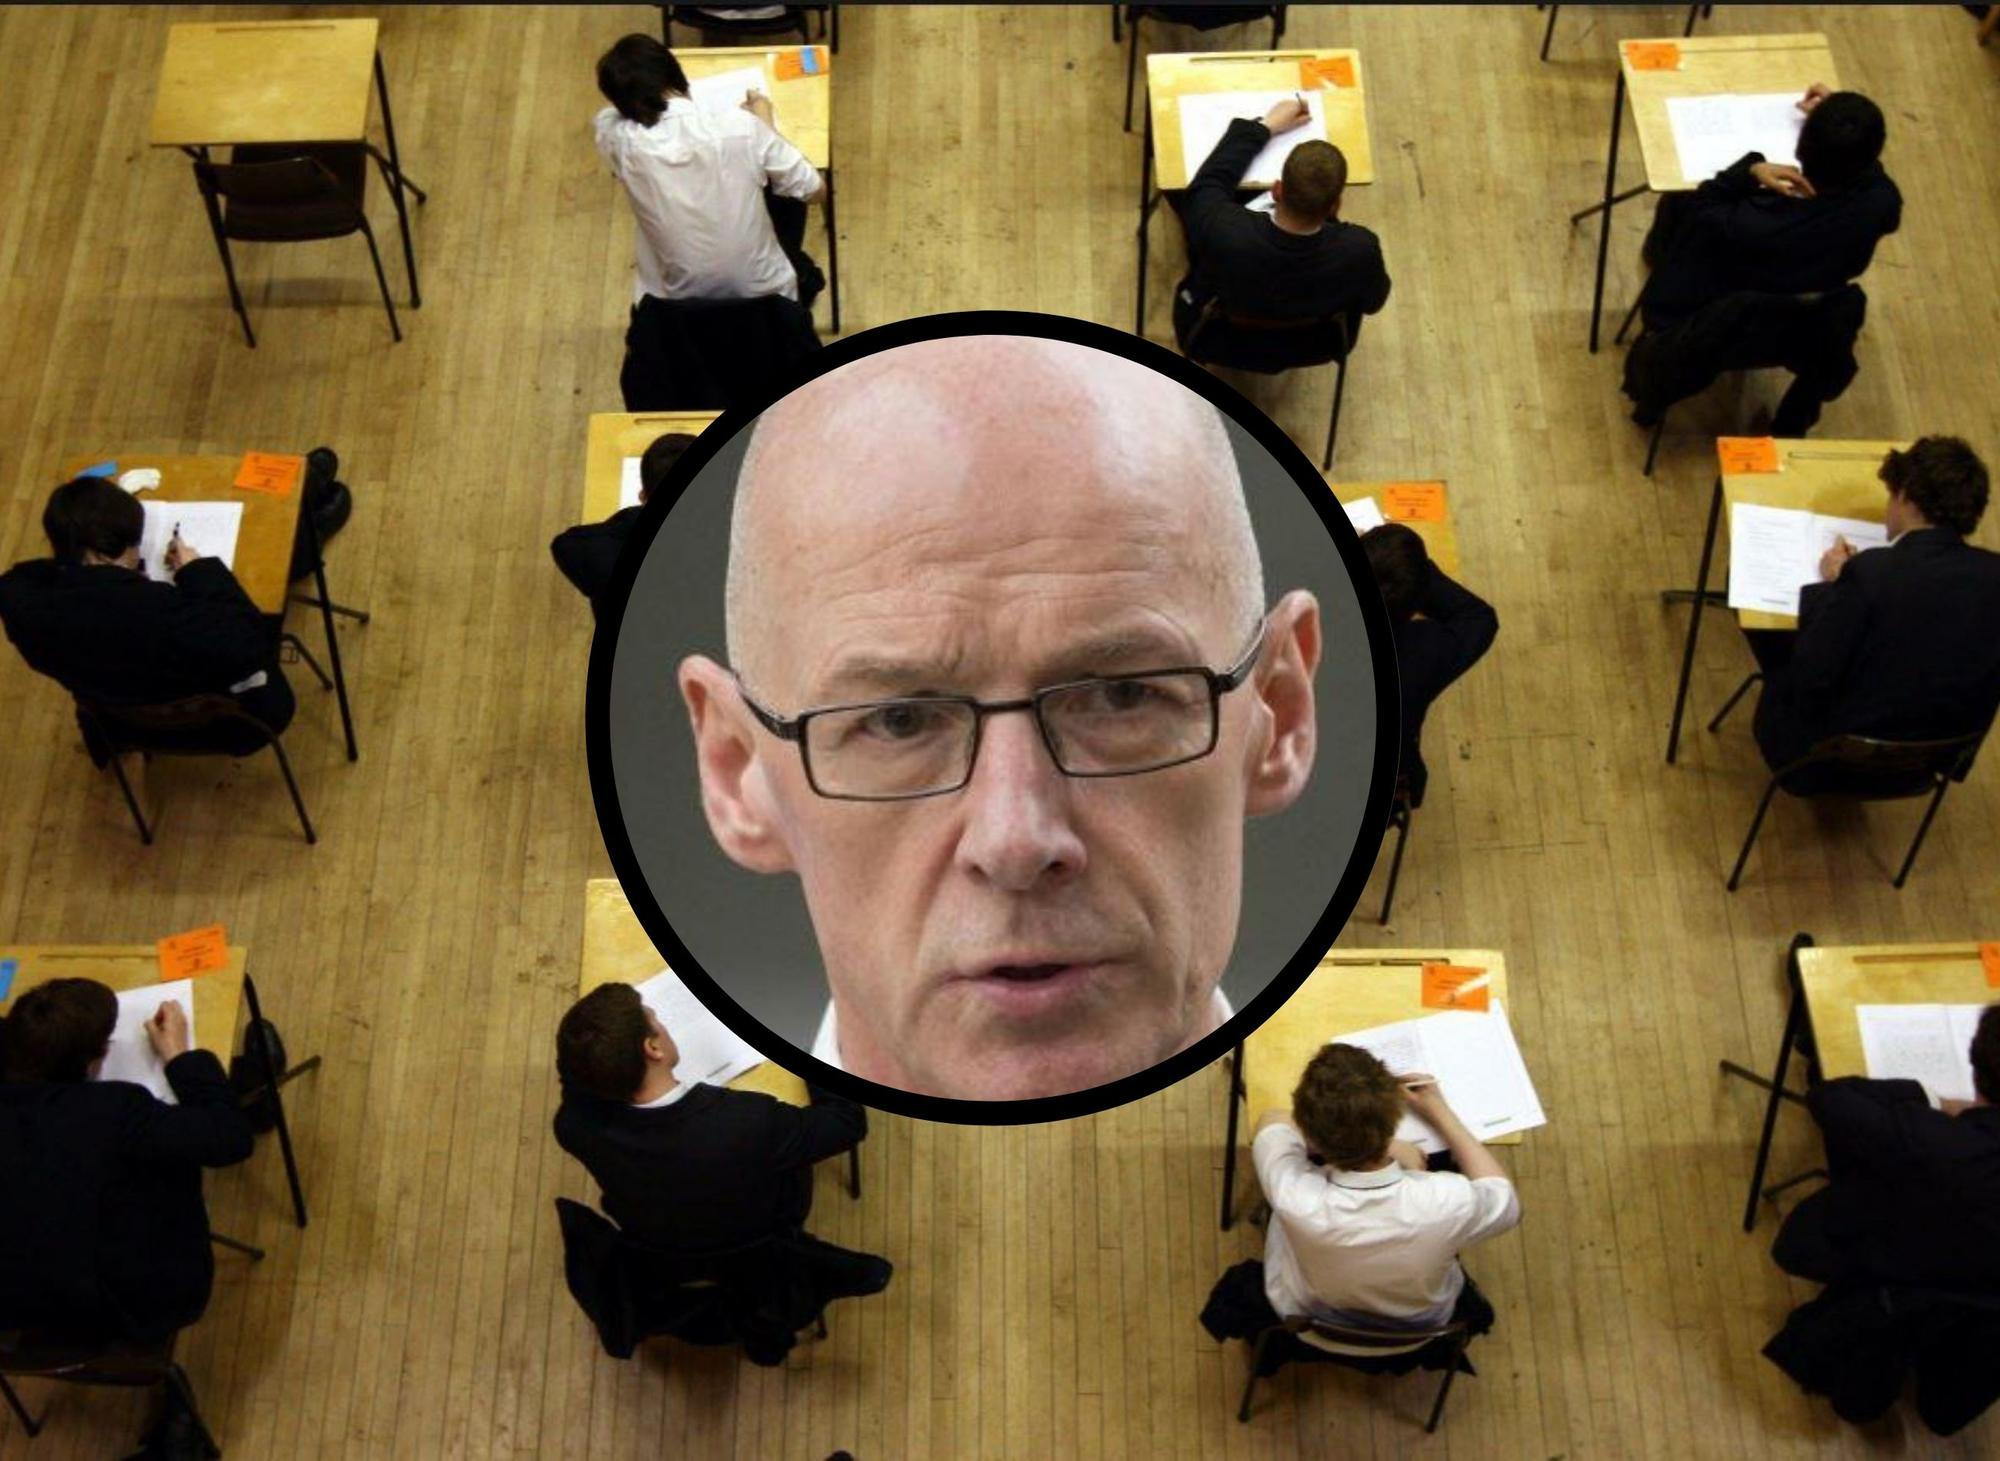 SQA appeals system 'not human rights compliant' as Swinney criticised for 'new low'